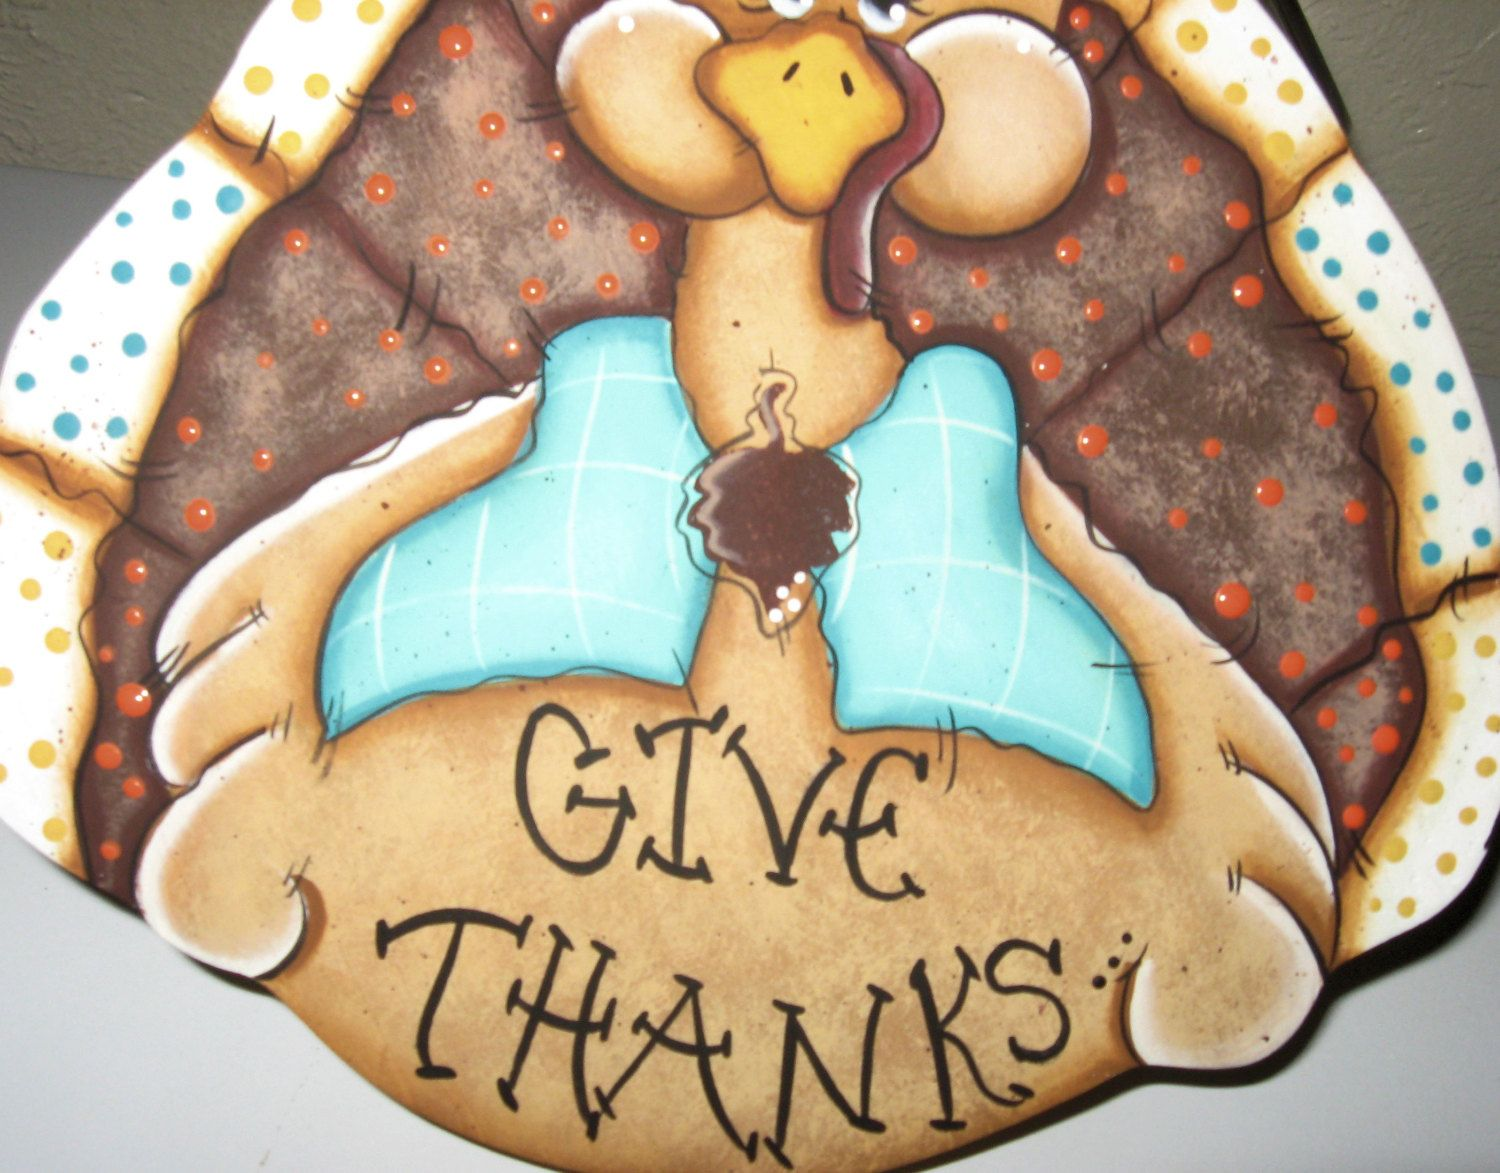 Thanksgiving turkey decor - Thanksgiving Turkey Decor Turkey Decor Turkey Cookie Lids Thanksgiving Decor Painted Turkey Decor Wood Turkeys